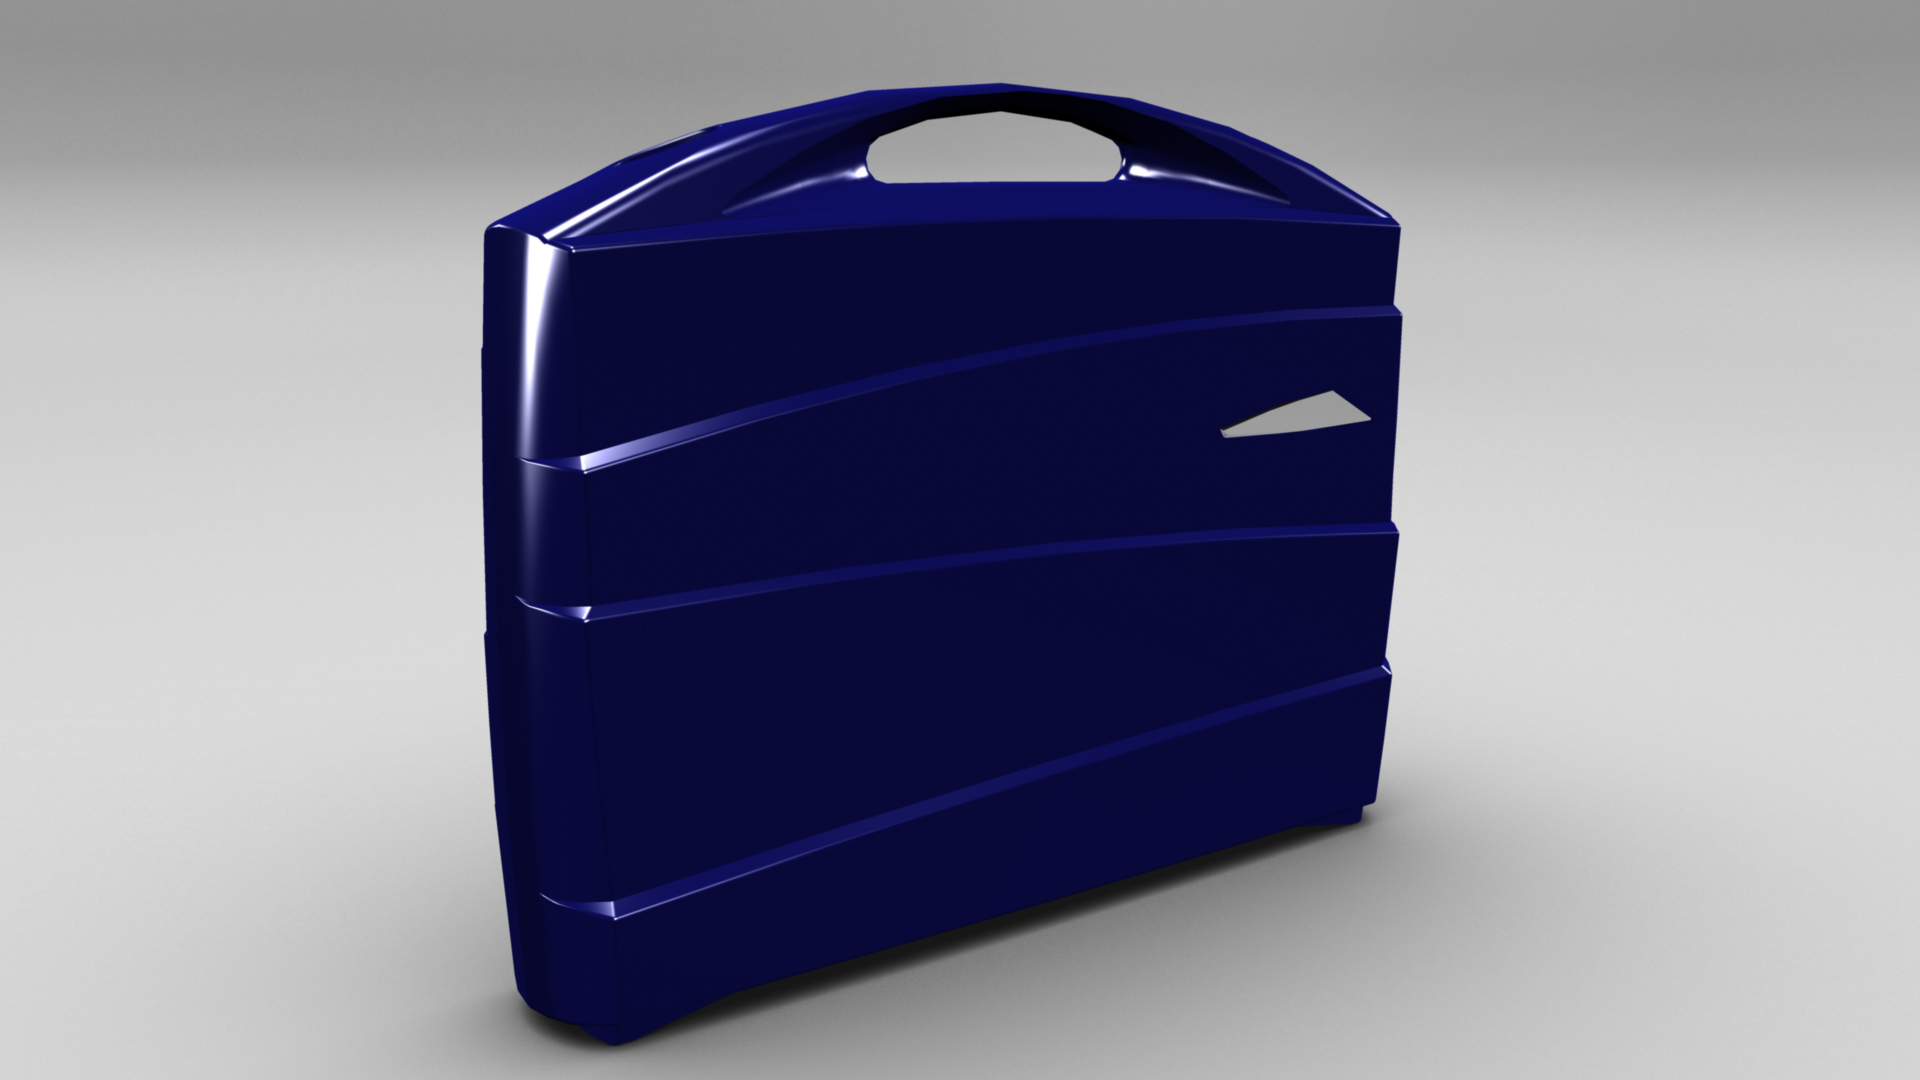 metal suitcase 3d model max fbx ma mb obj 286021